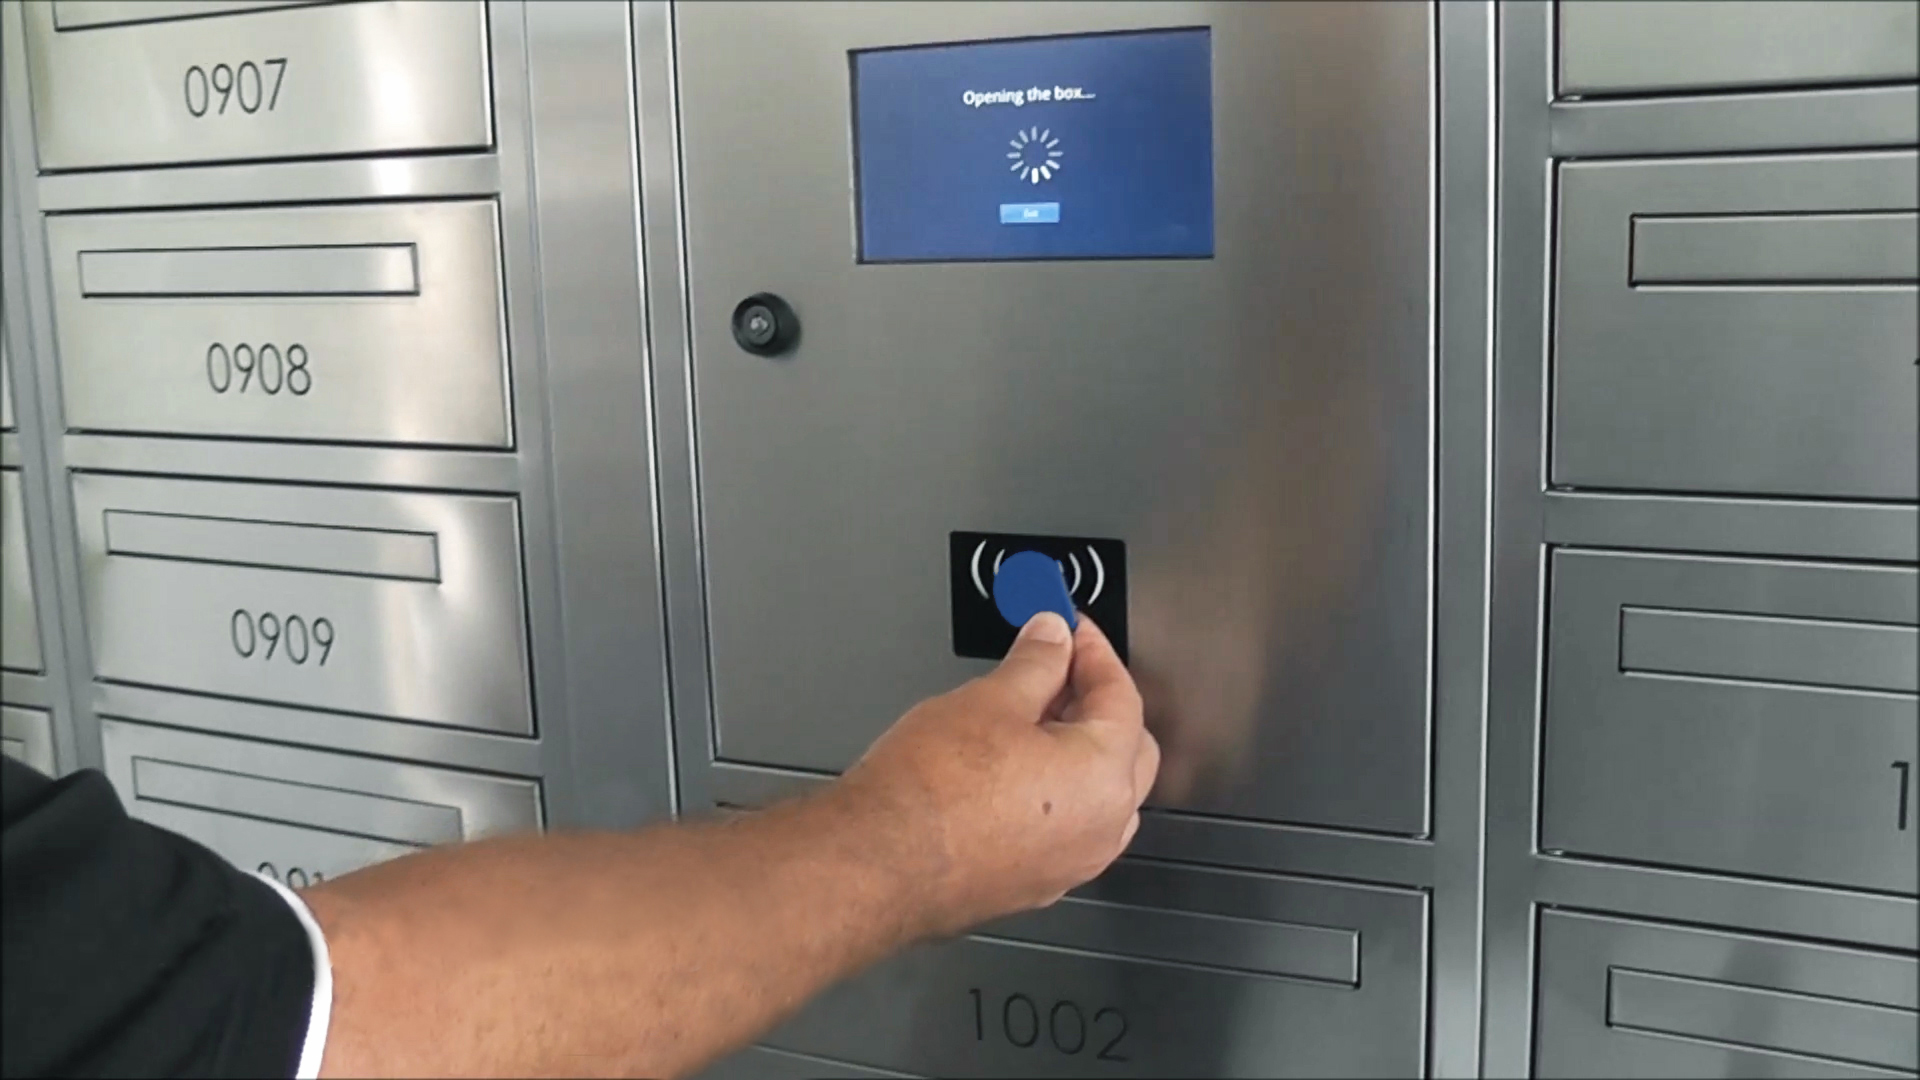 ▲ Parcels requiring signatures are electronically signed for by the parcel locker and all movements are fully logged.